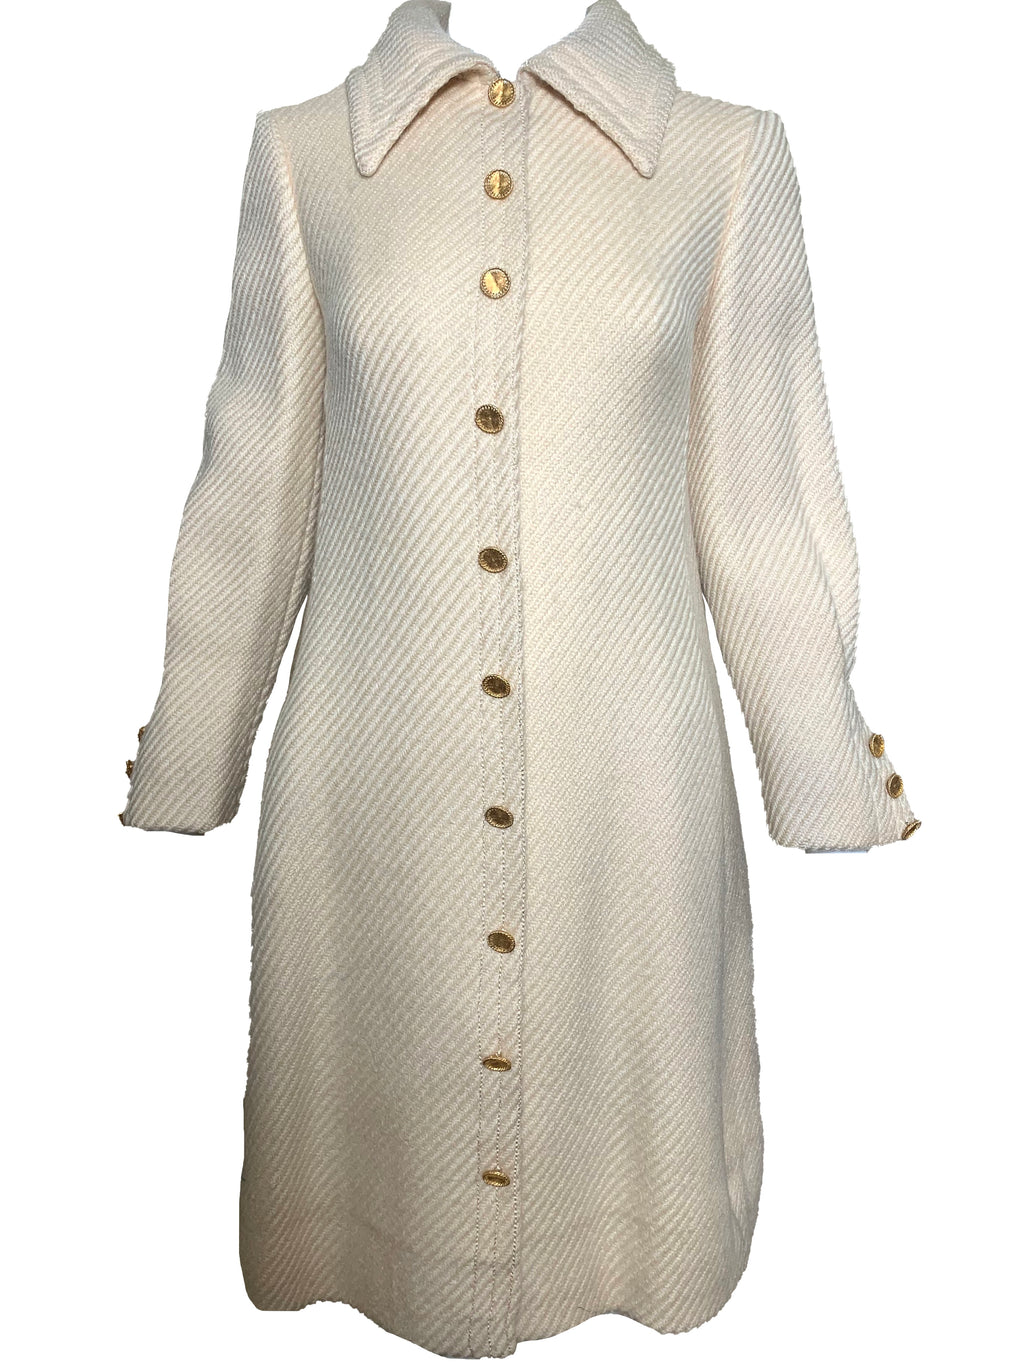 Galanos 60 Ivory Wool Mod Coat FRONT 1 of 6